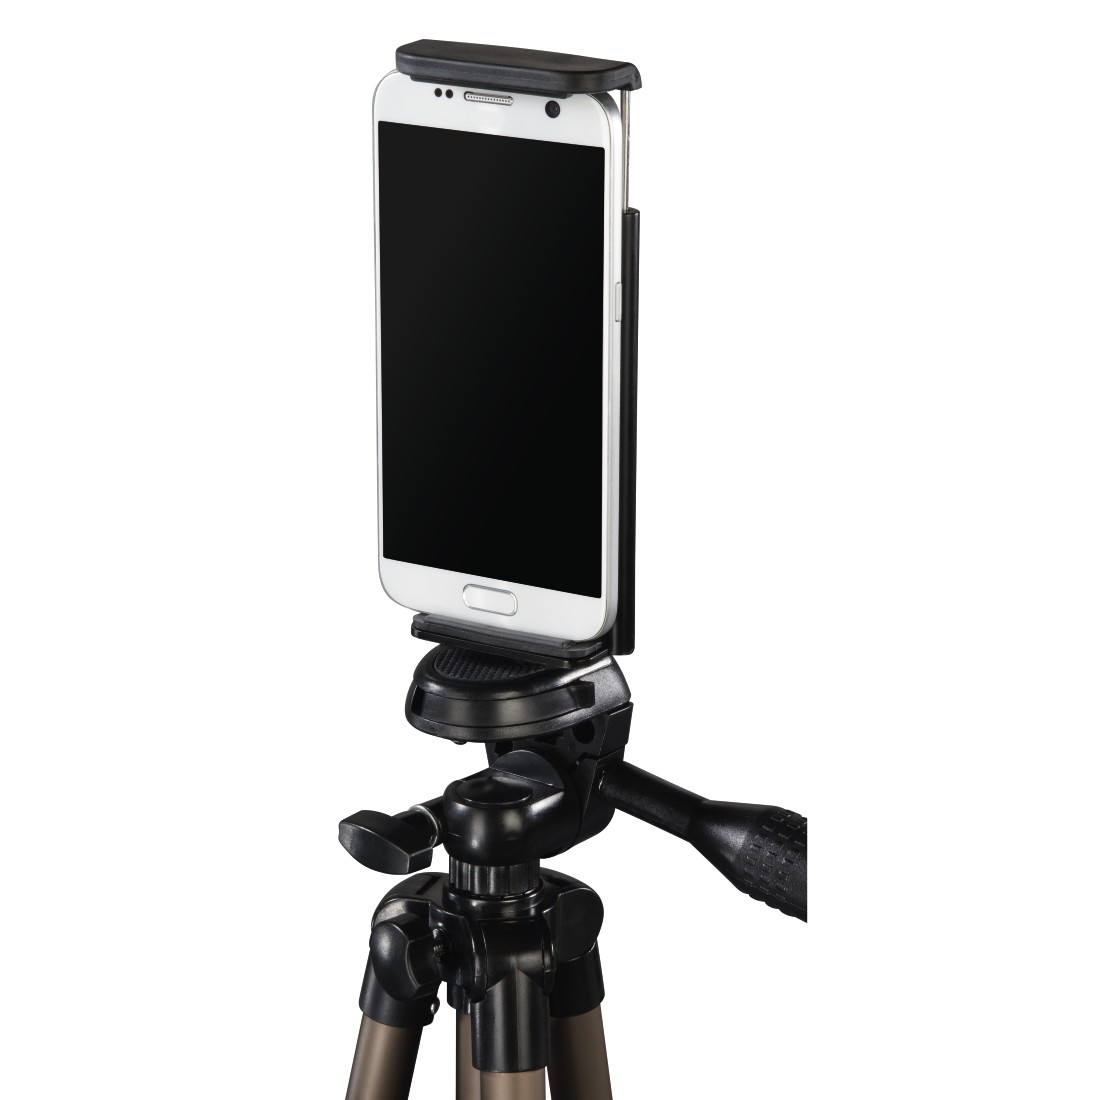 dex2 High-Res Detail 2 - Hama, Tripod for Smartphone/Tablet, 106 - 3D